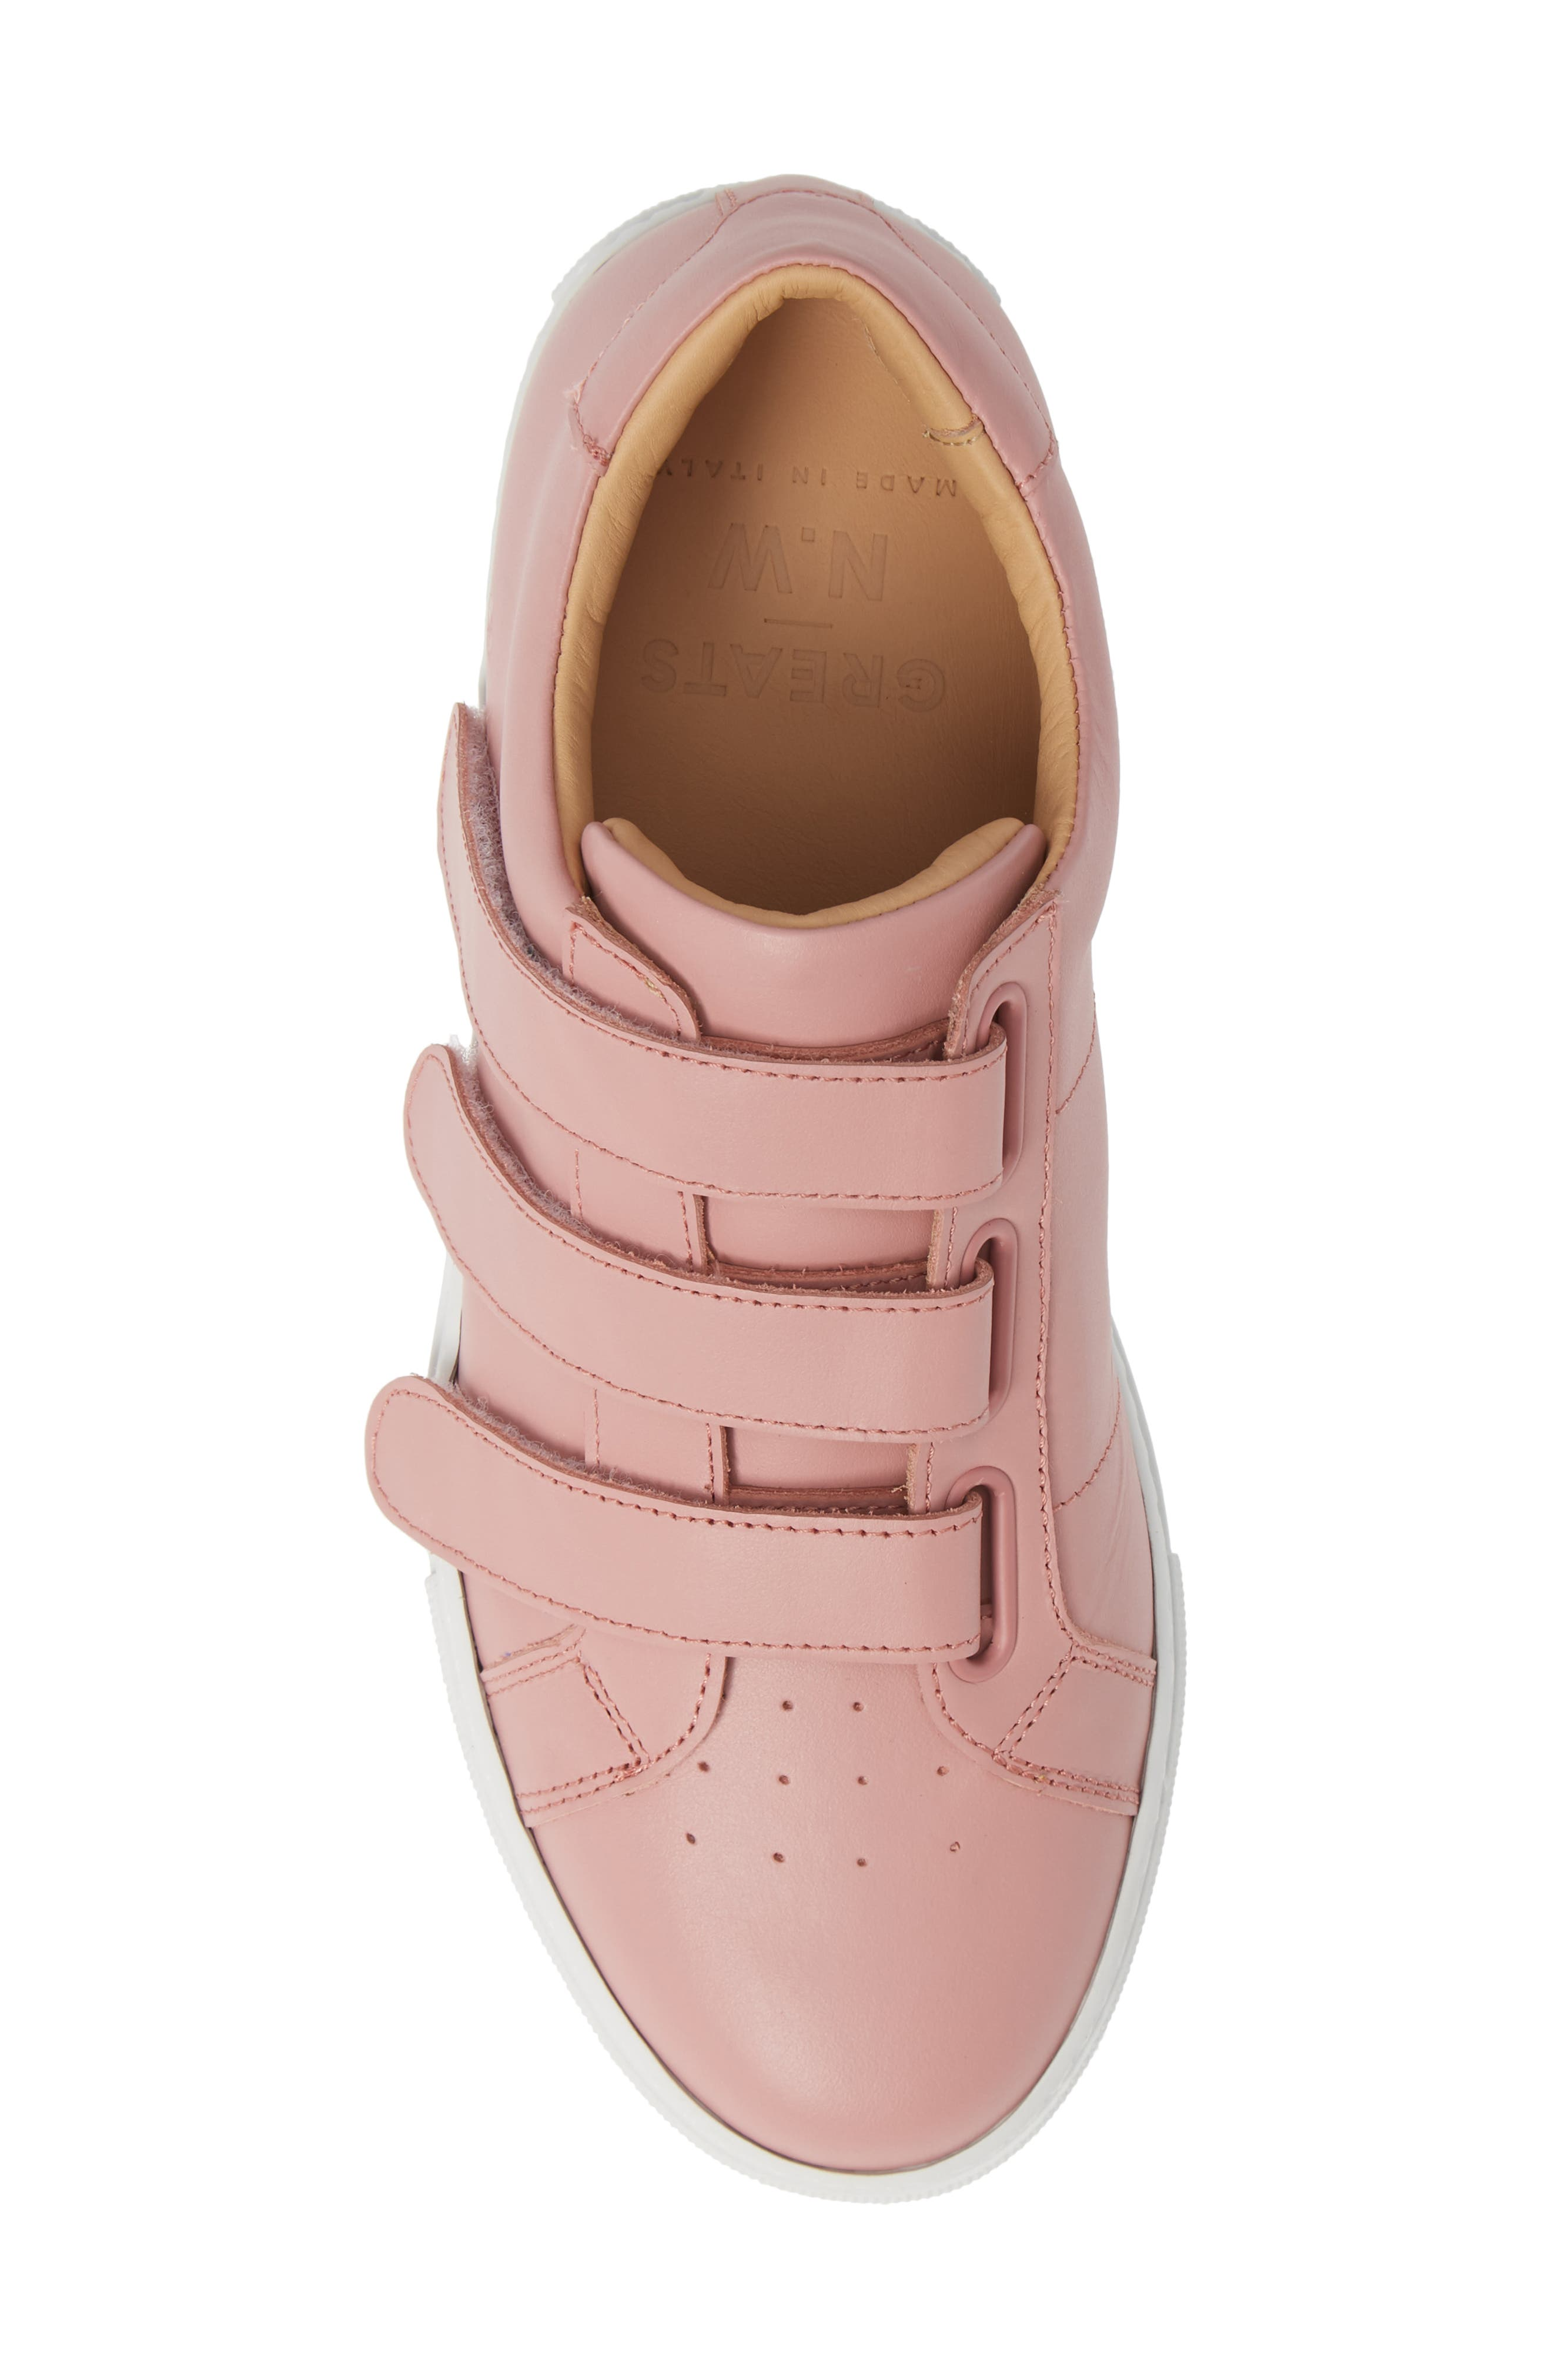 Nick Wooster x GREATS Wooster Royale Sneaker,                             Alternate thumbnail 5, color,                             651